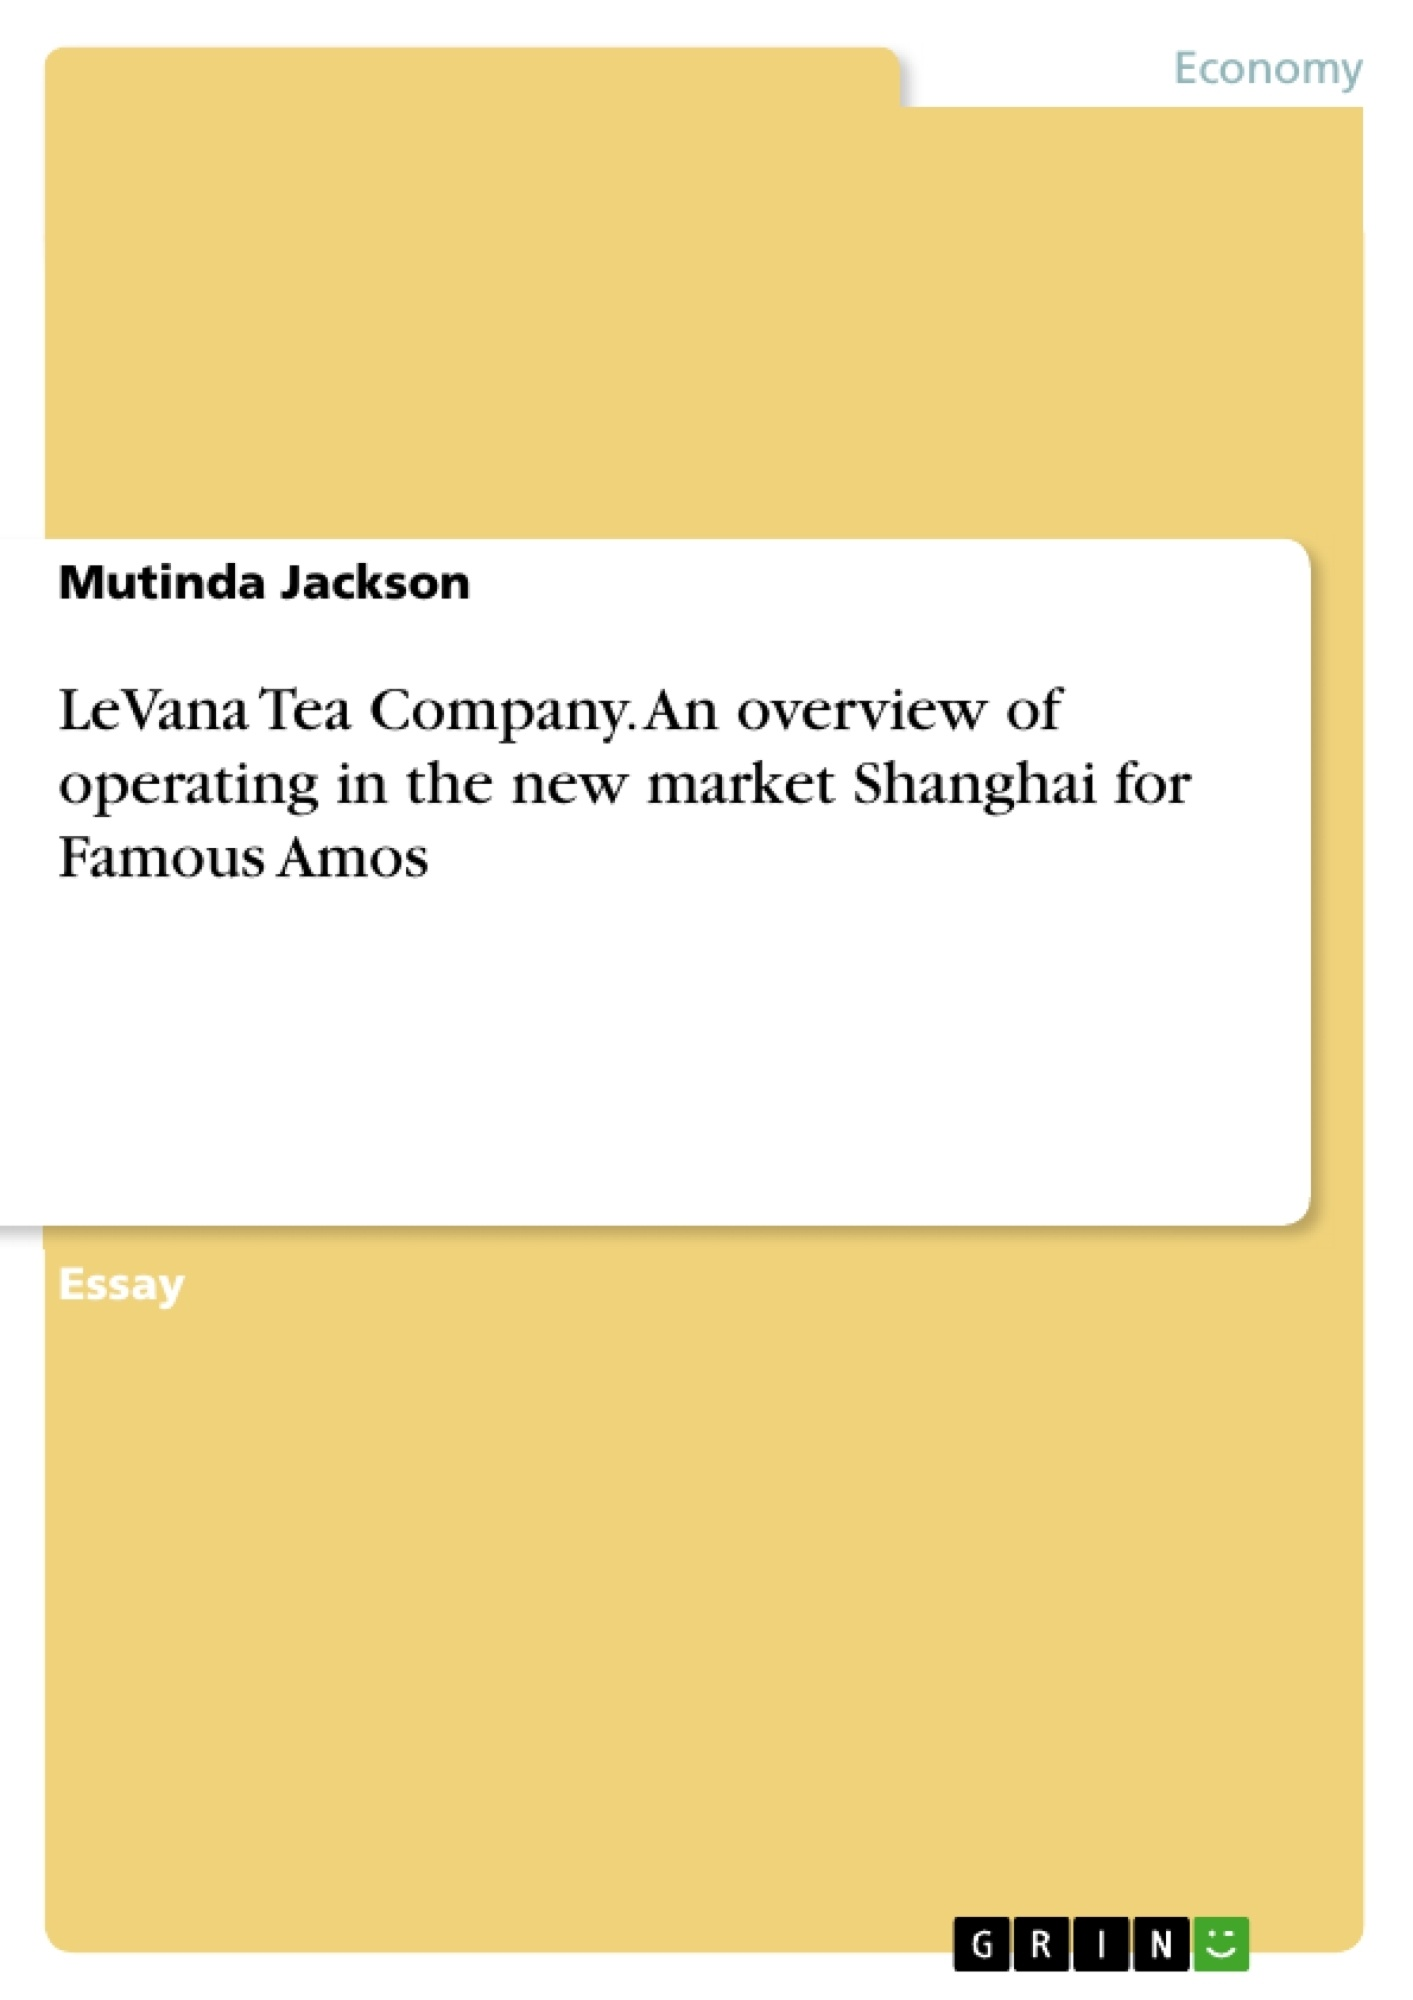 Title: LeVana Tea Company. An overview of operating in the new market Shanghai for Famous Amos